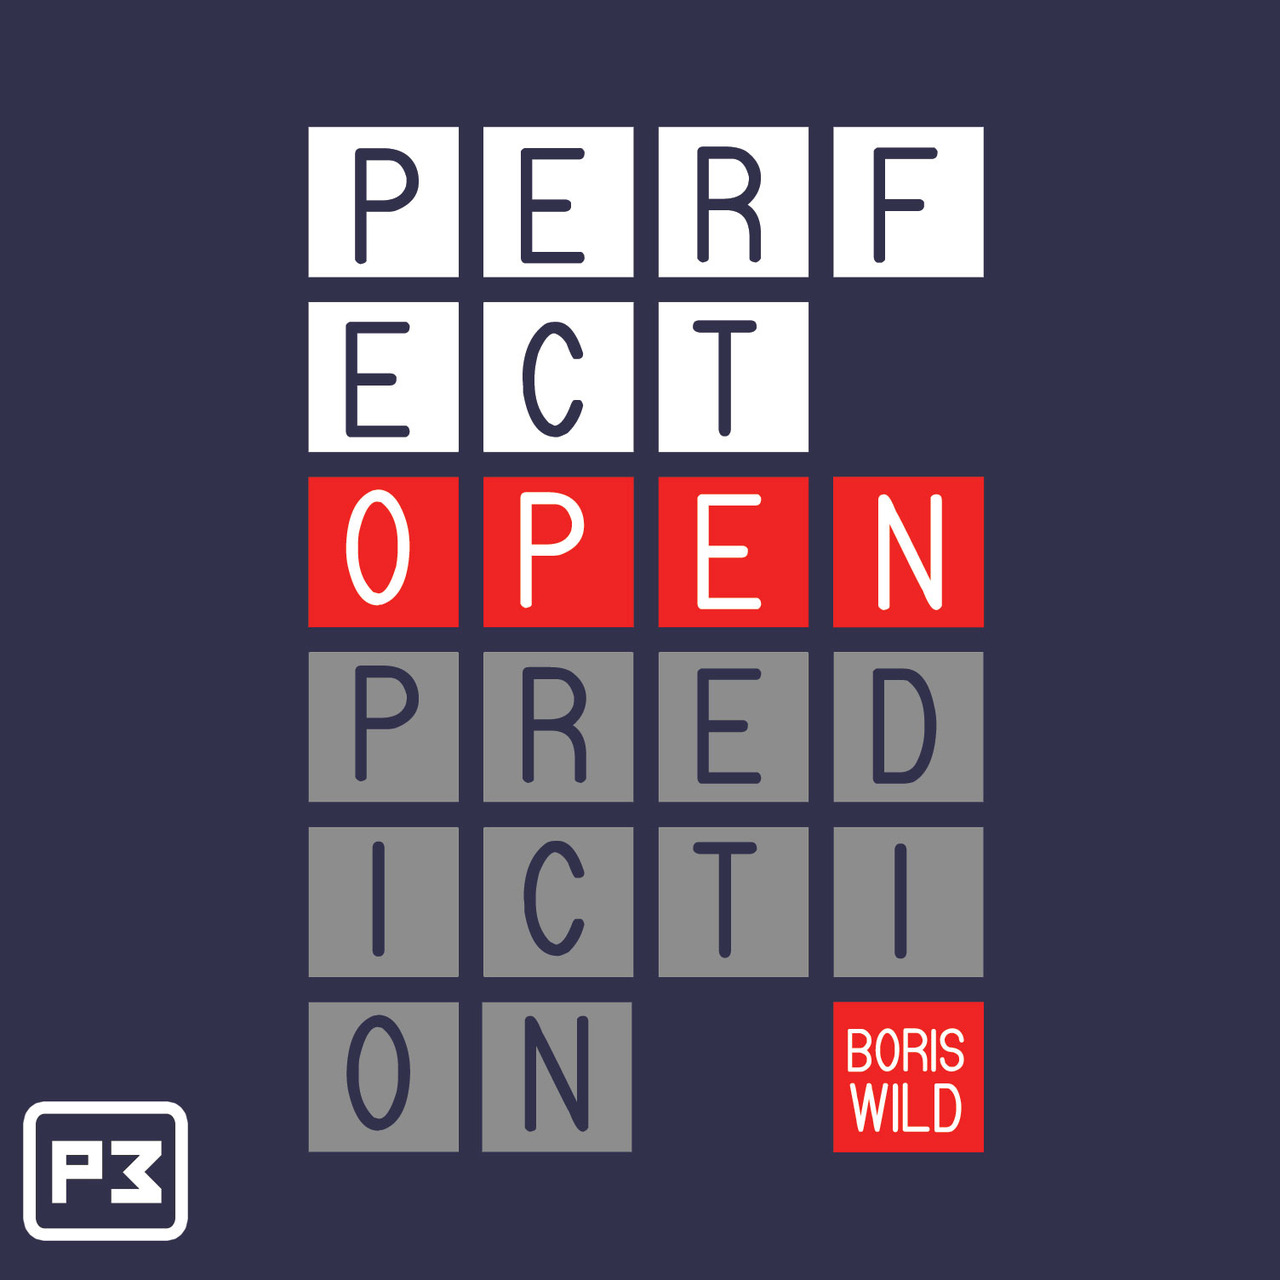 Perfect Open Prediction by Boris Wild